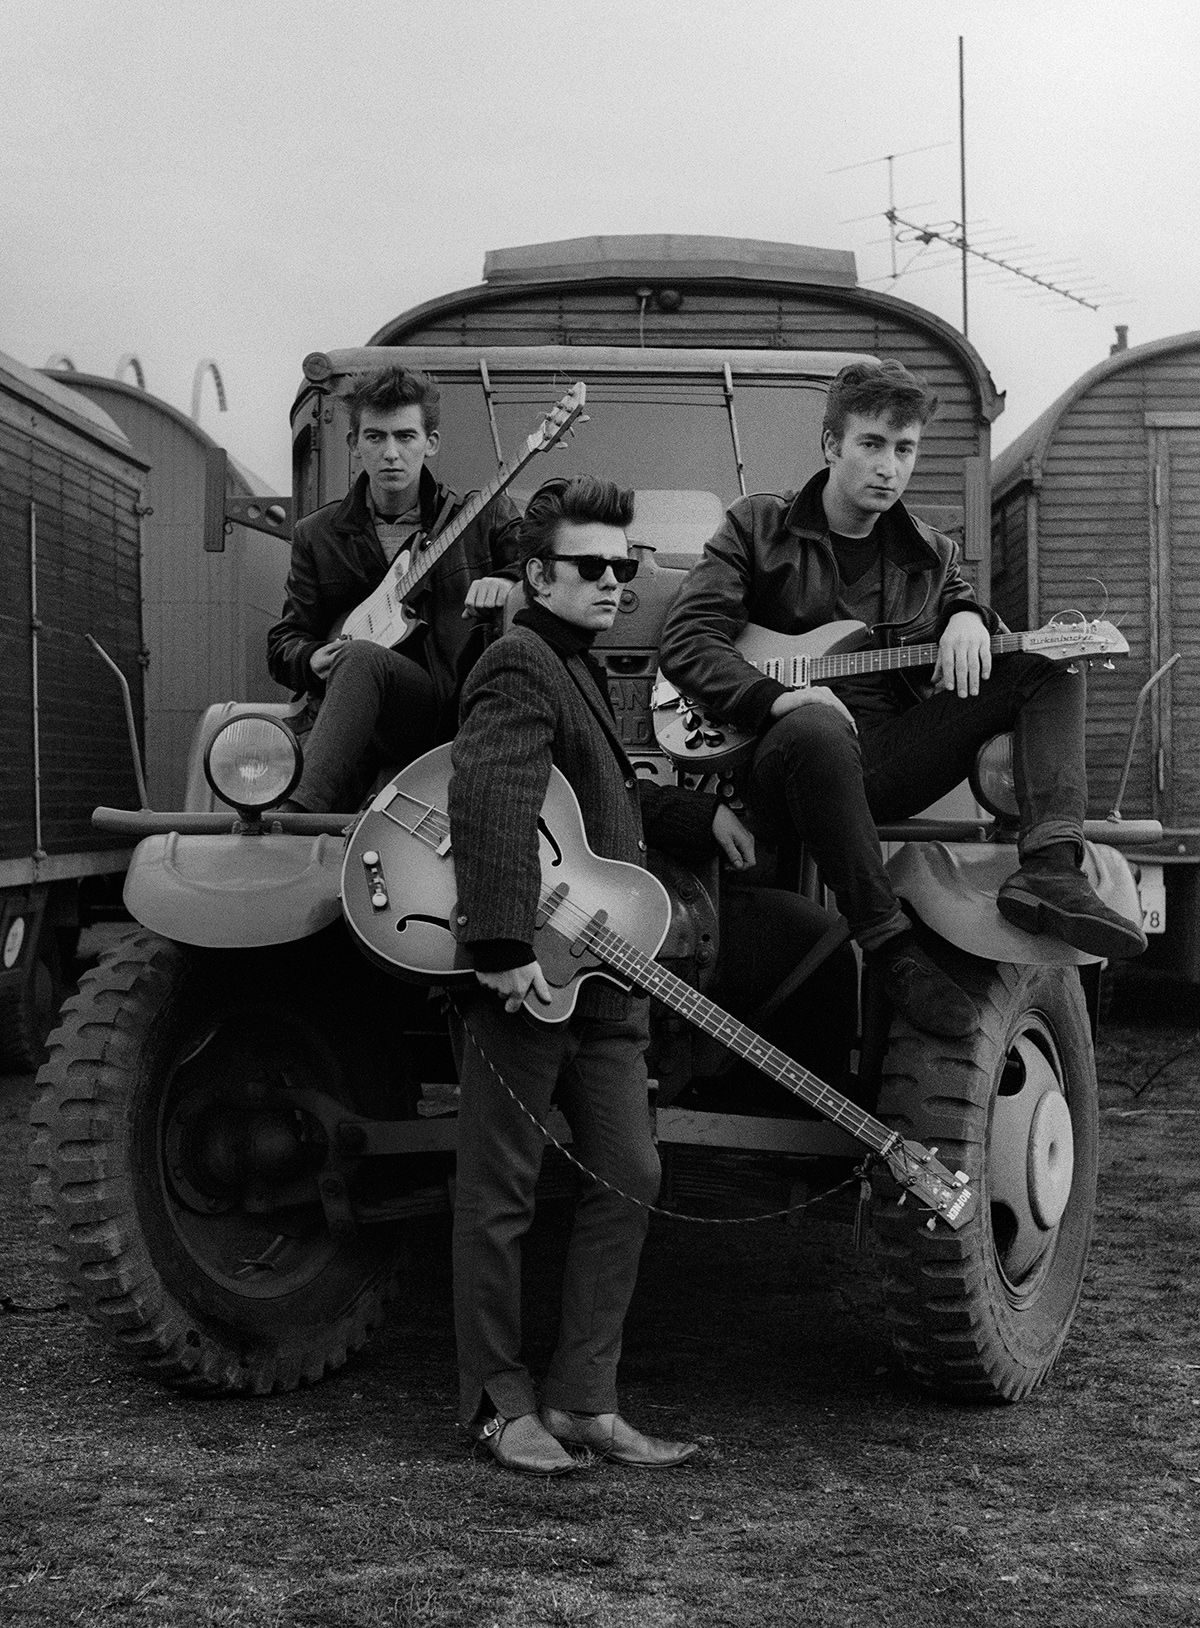 Astrid Kirchherr, John Lennon, Stuart Sutcliffe and George Harrison on a truck at the fairground, 1960 the beatles